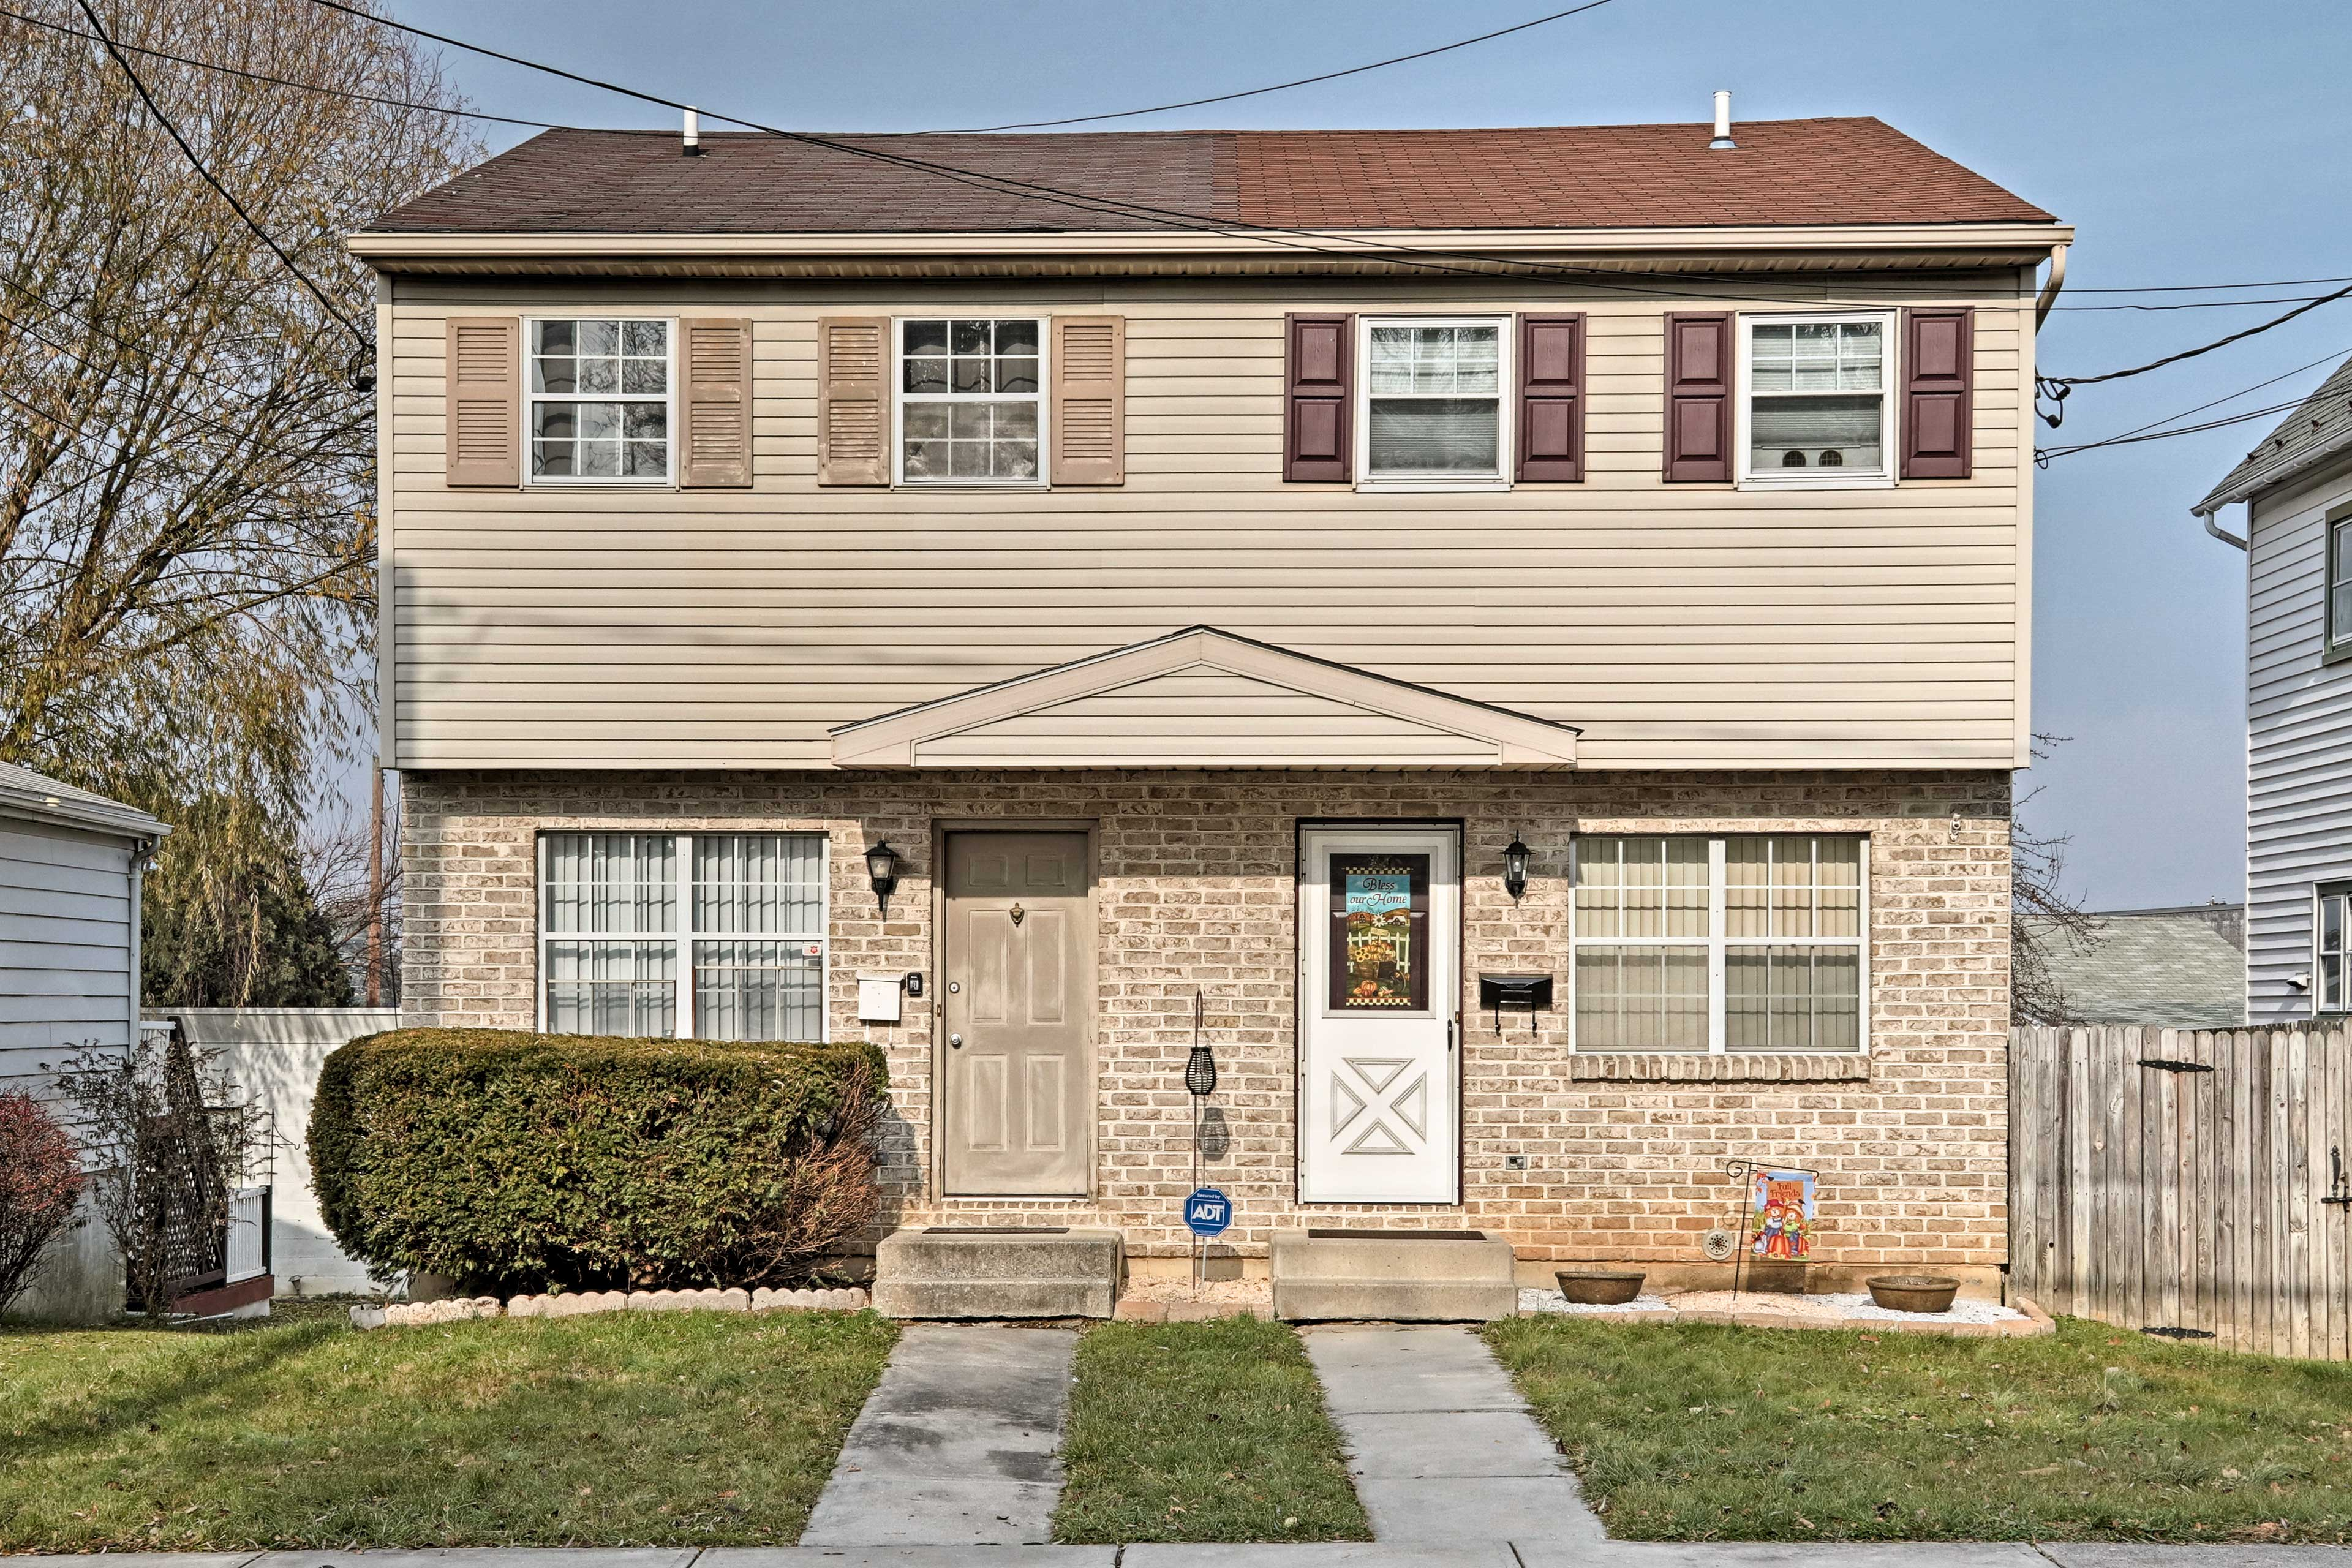 Explore the lively city of Allentown from this vacation rental home!